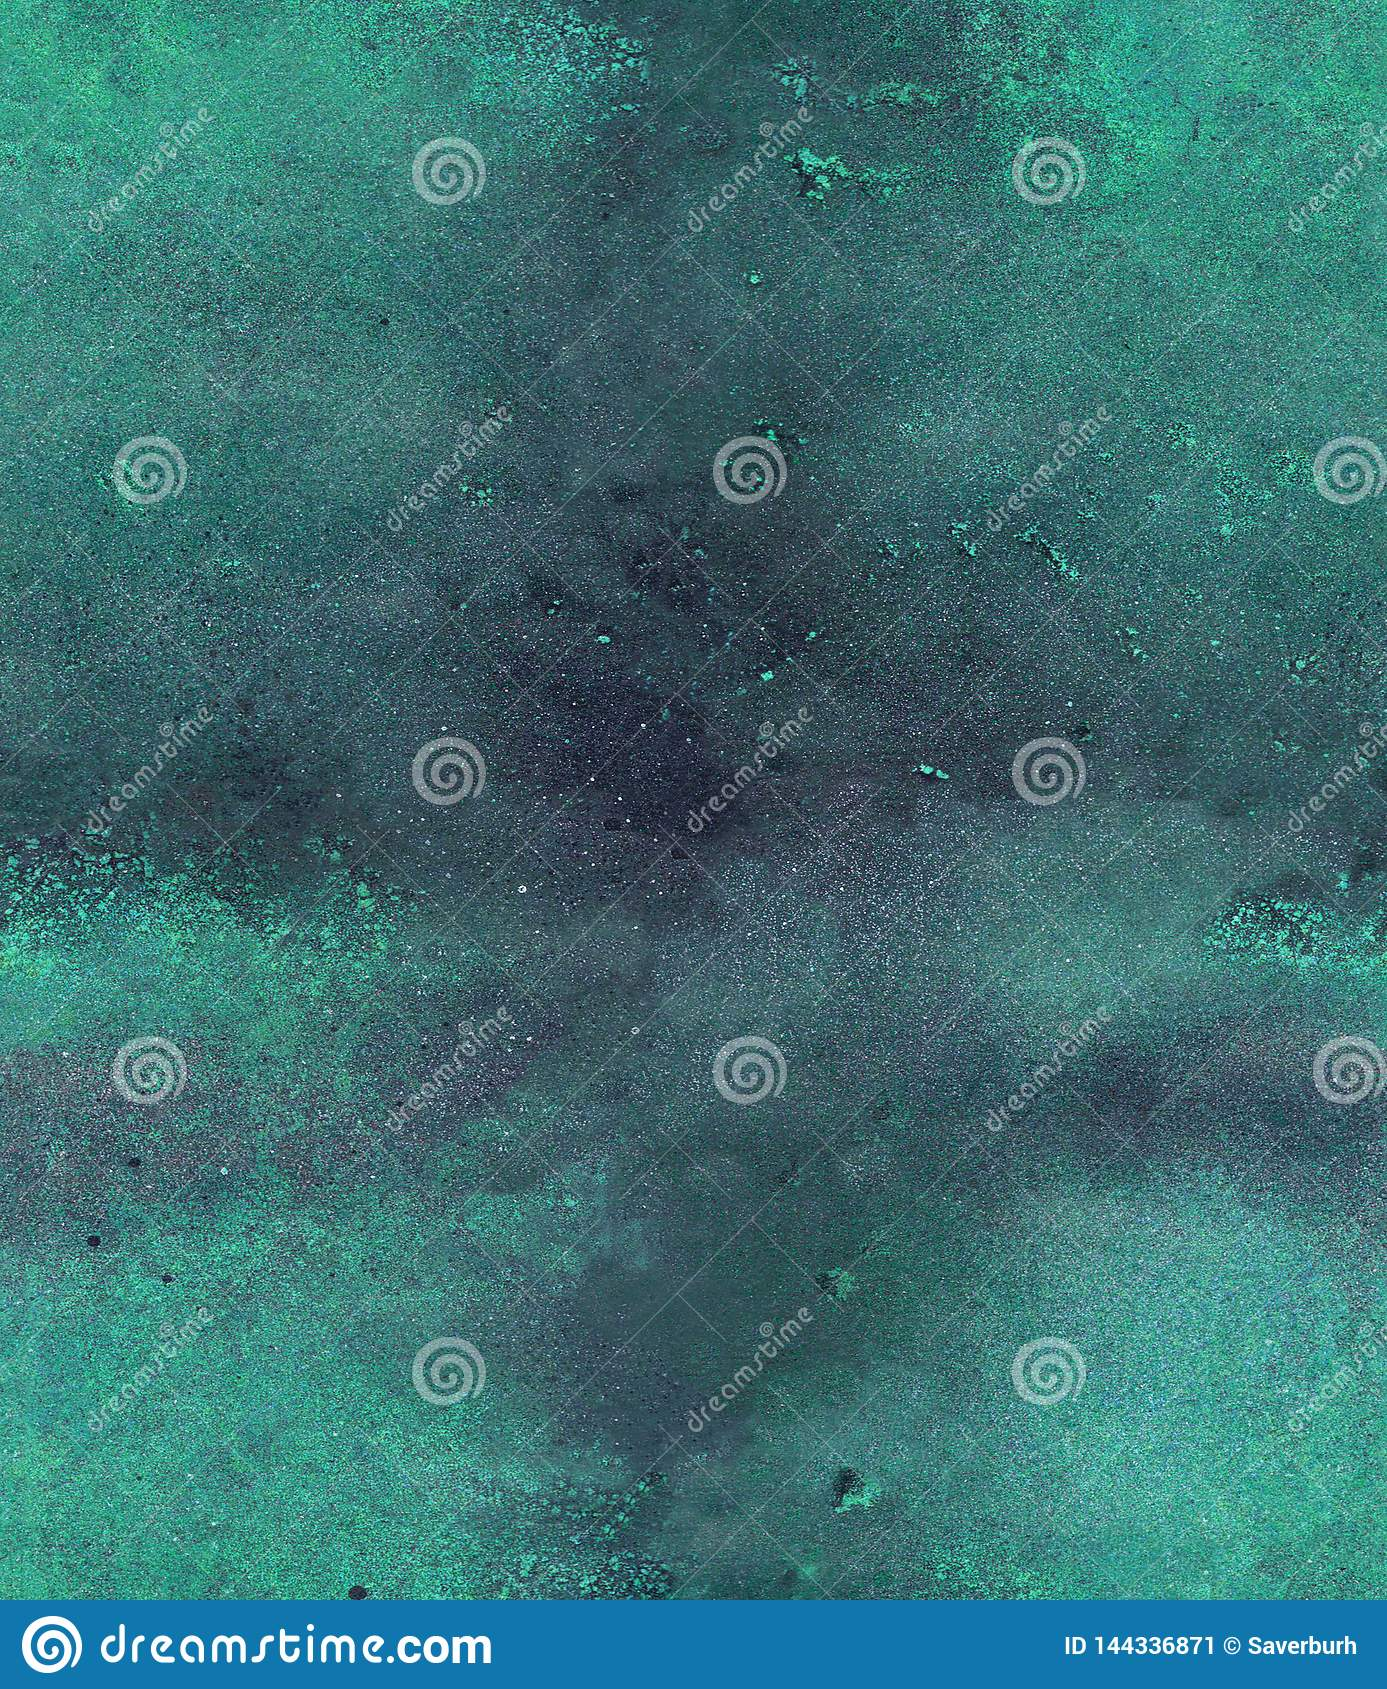 Watercolor, acril and ink seamless pattern